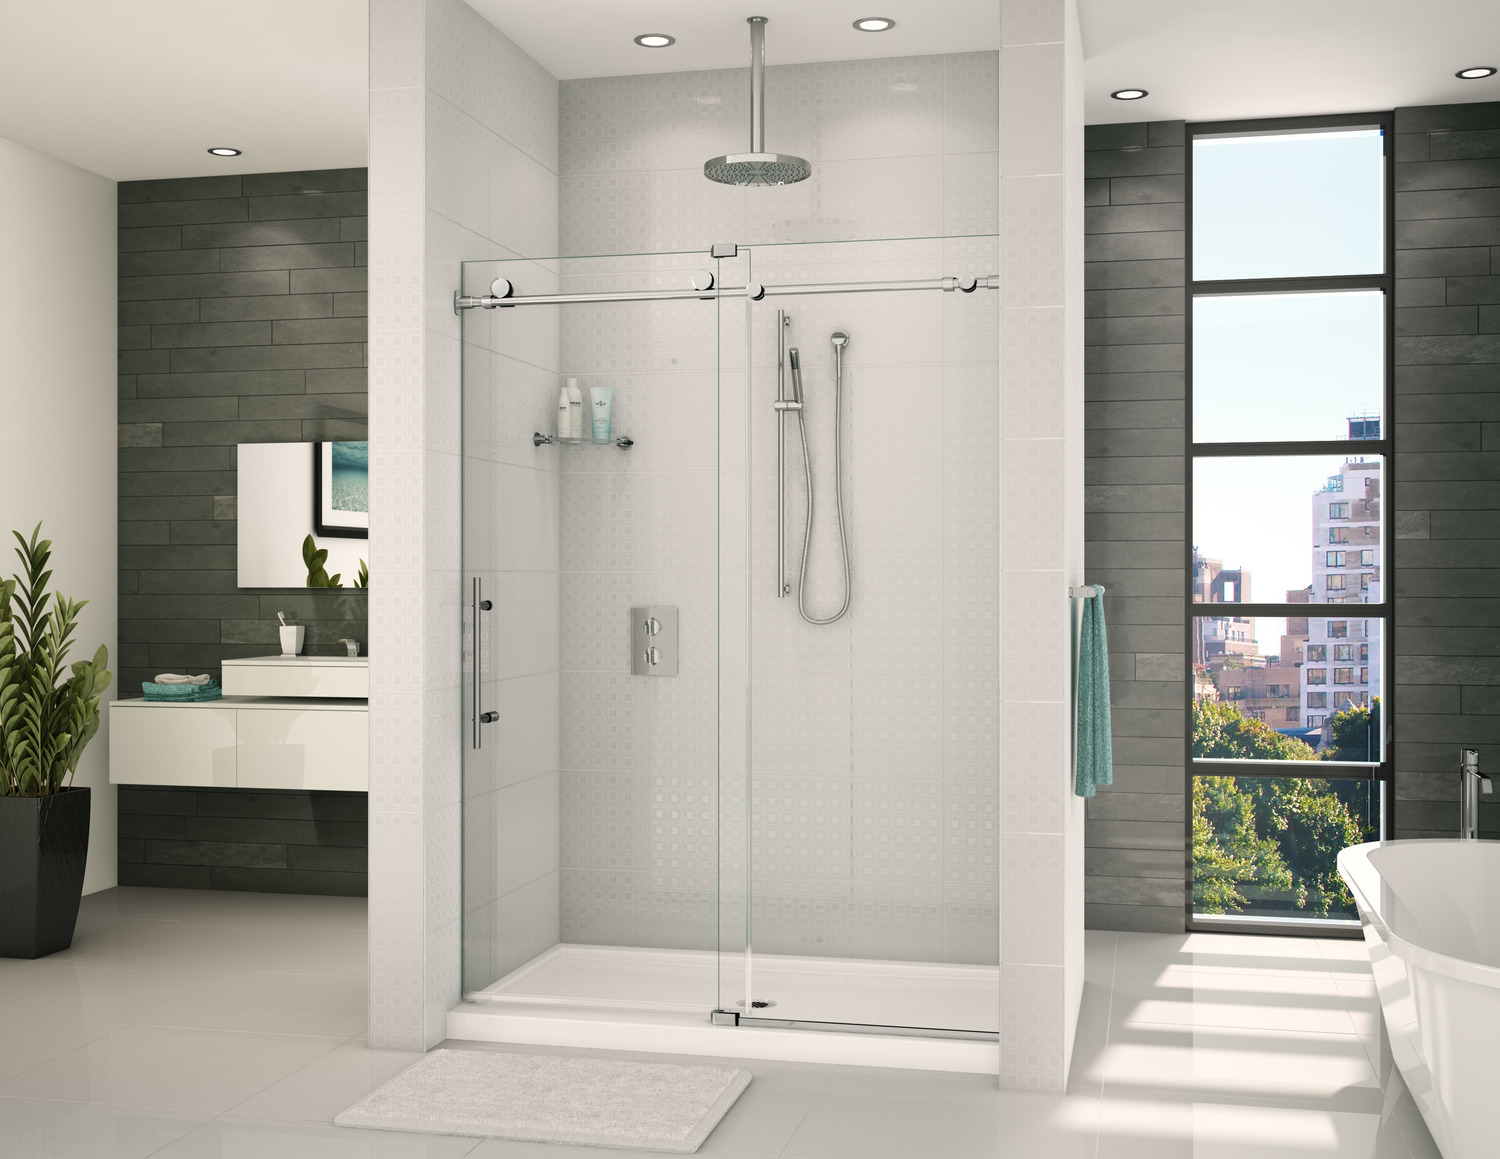 Glass shower enclosures gaithersburg glass company gaithersburg glass company planetlyrics Image collections